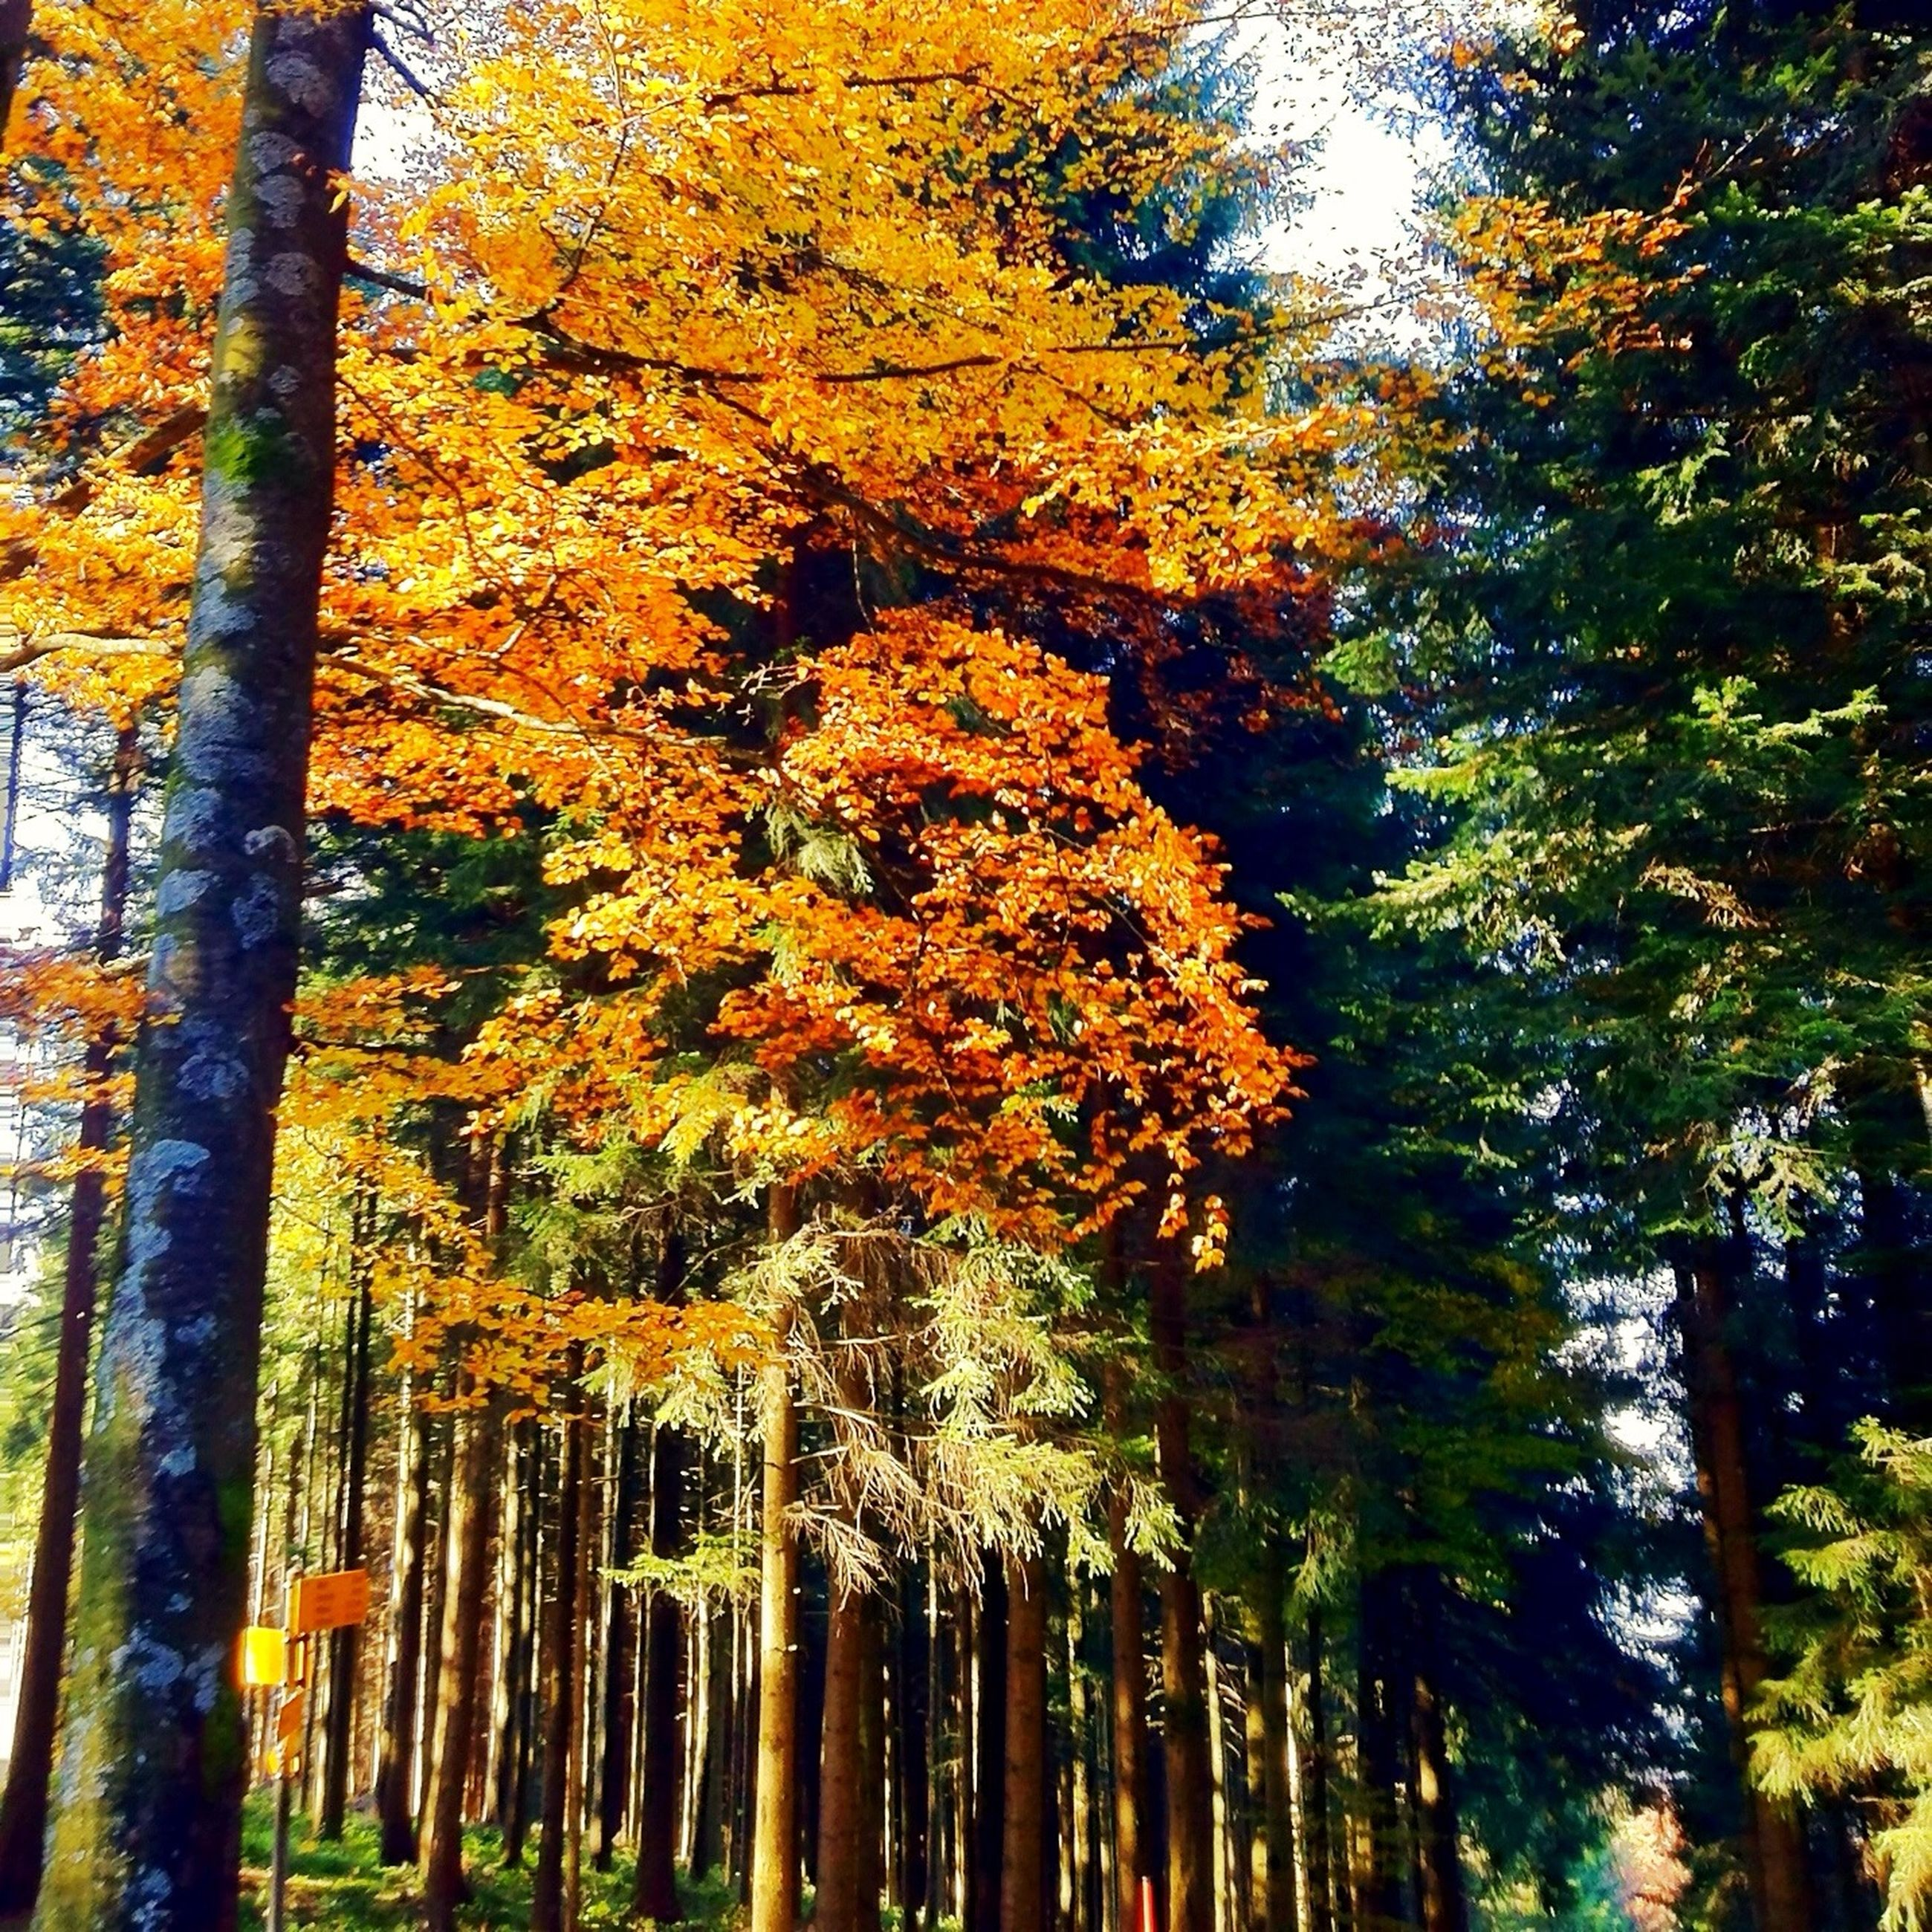 tree, autumn, change, season, growth, branch, tranquility, beauty in nature, tree trunk, nature, tranquil scene, forest, scenics, orange color, woodland, low angle view, yellow, outdoors, park - man made space, idyllic